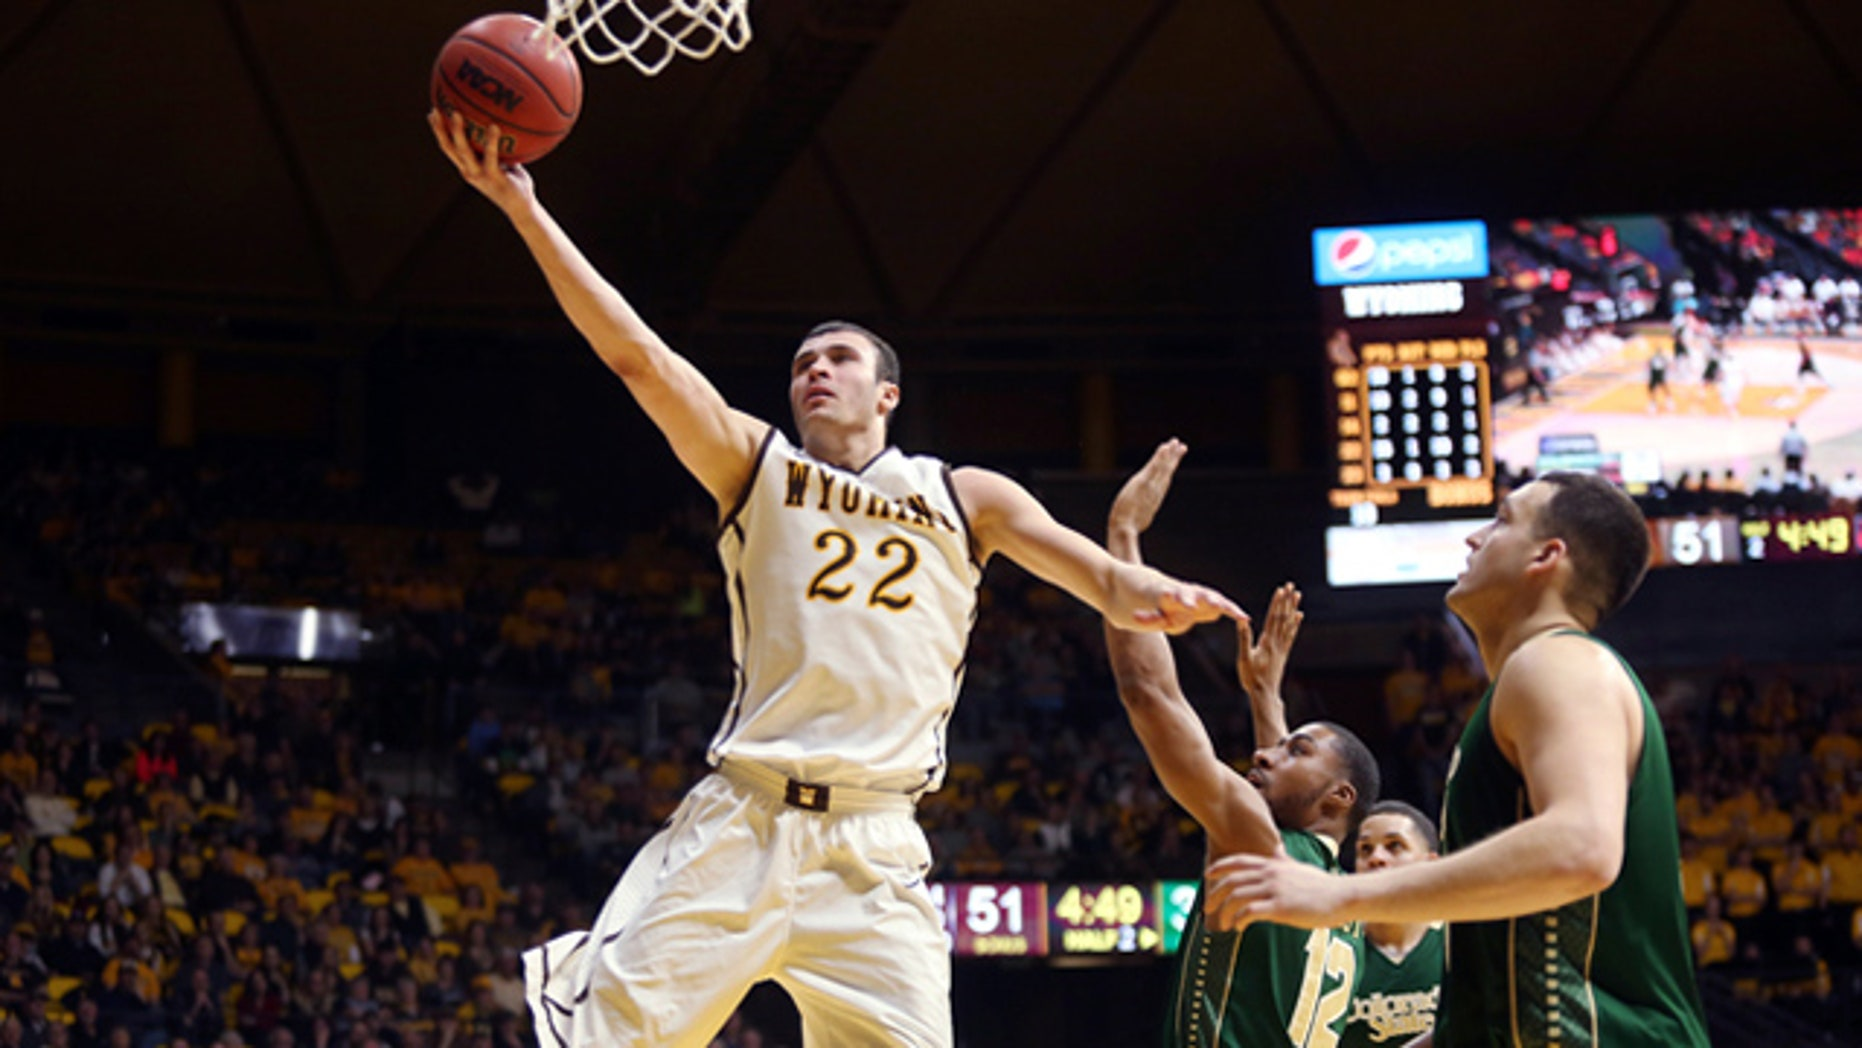 Feb 4, 2015: Wyoming's Larry Nance goes up for a shot in a game against Colorado State. (Alan Rogers, Casper Star-Tribune via AP)